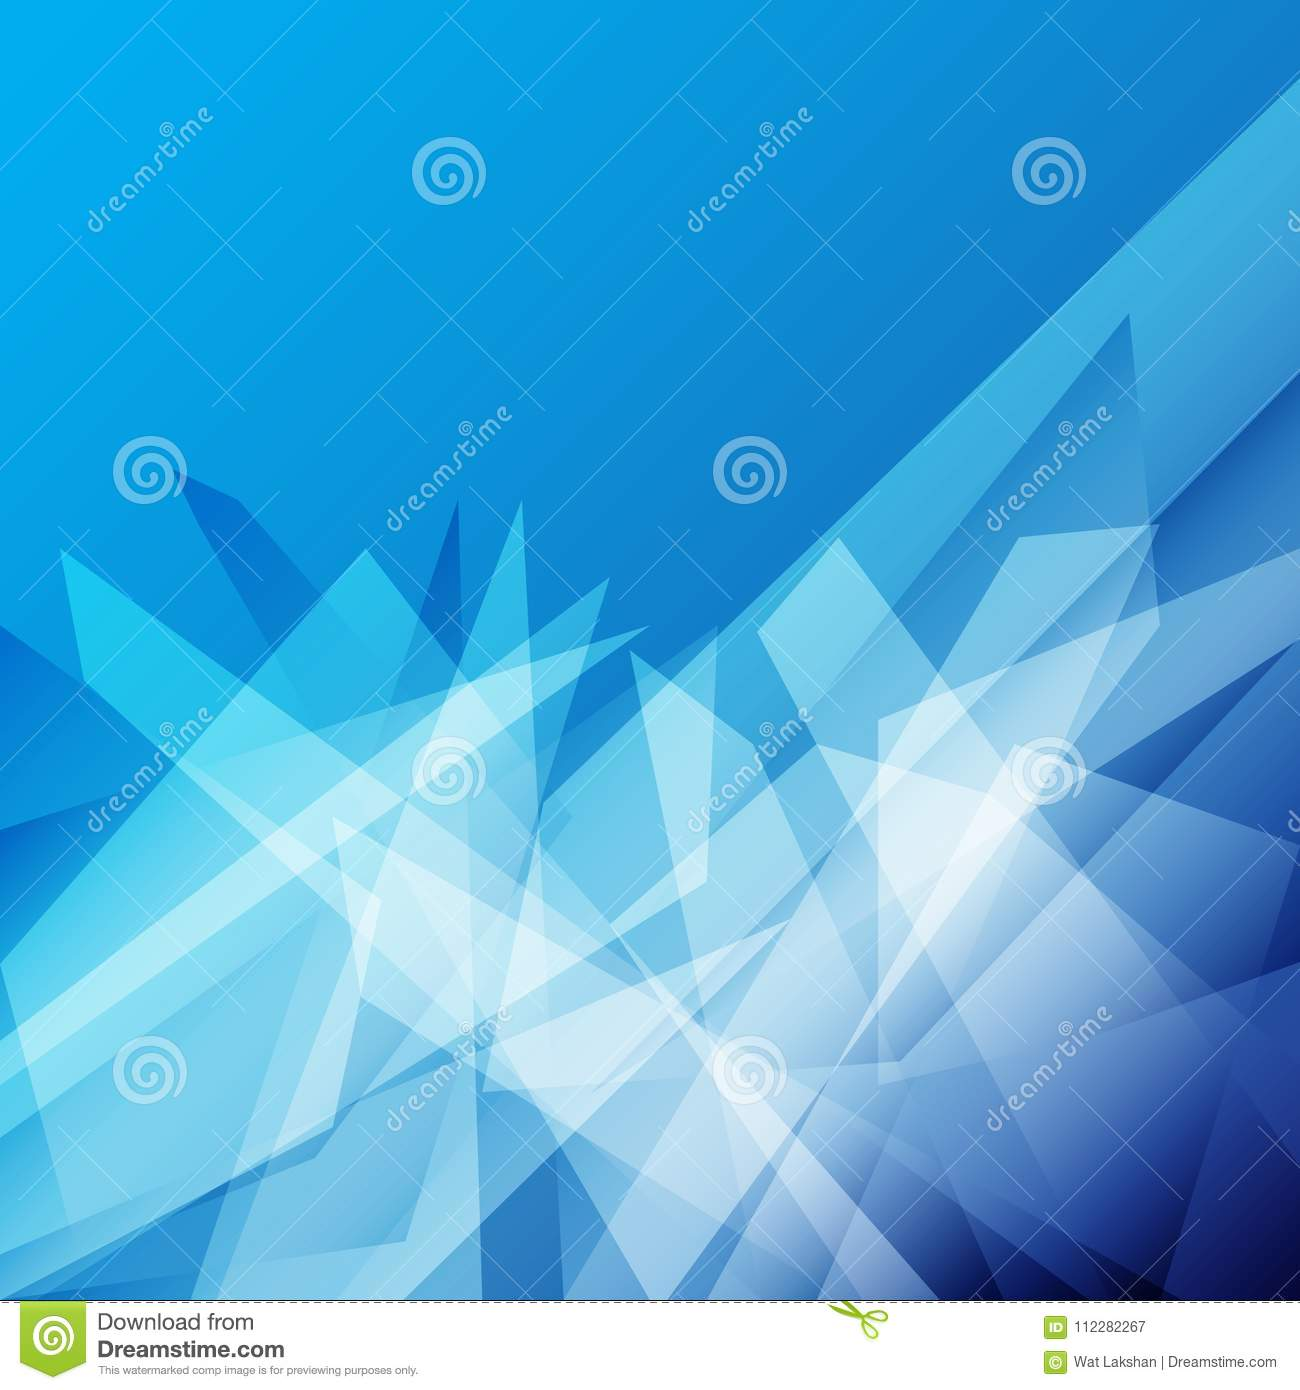 Professional Colorful Blue Color Abstract Geometric